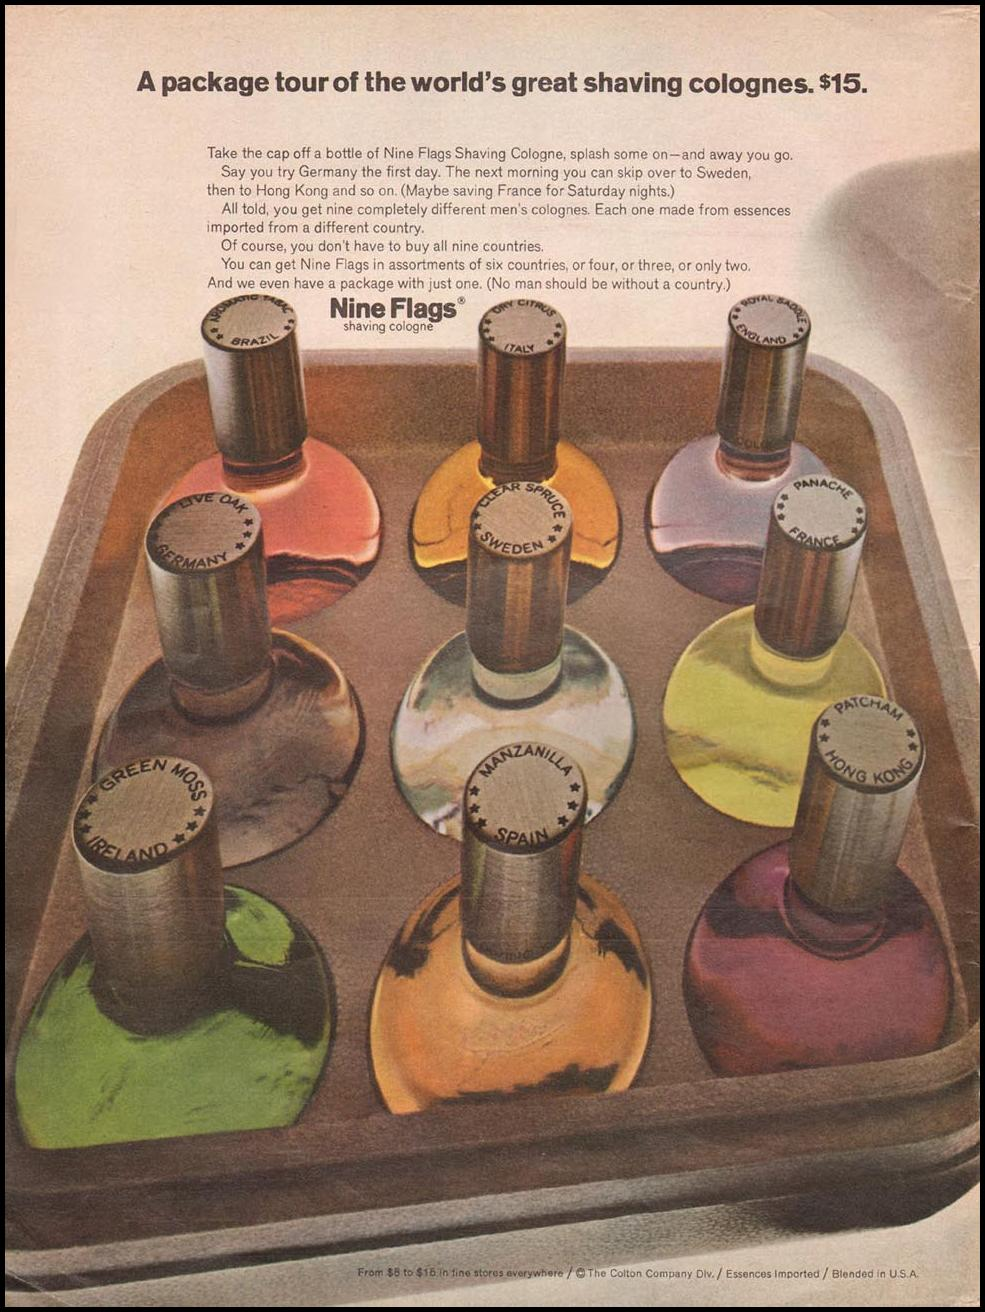 NINE FLAGS SHAVING COLOGNE NEWSWEEK 05/20/1968